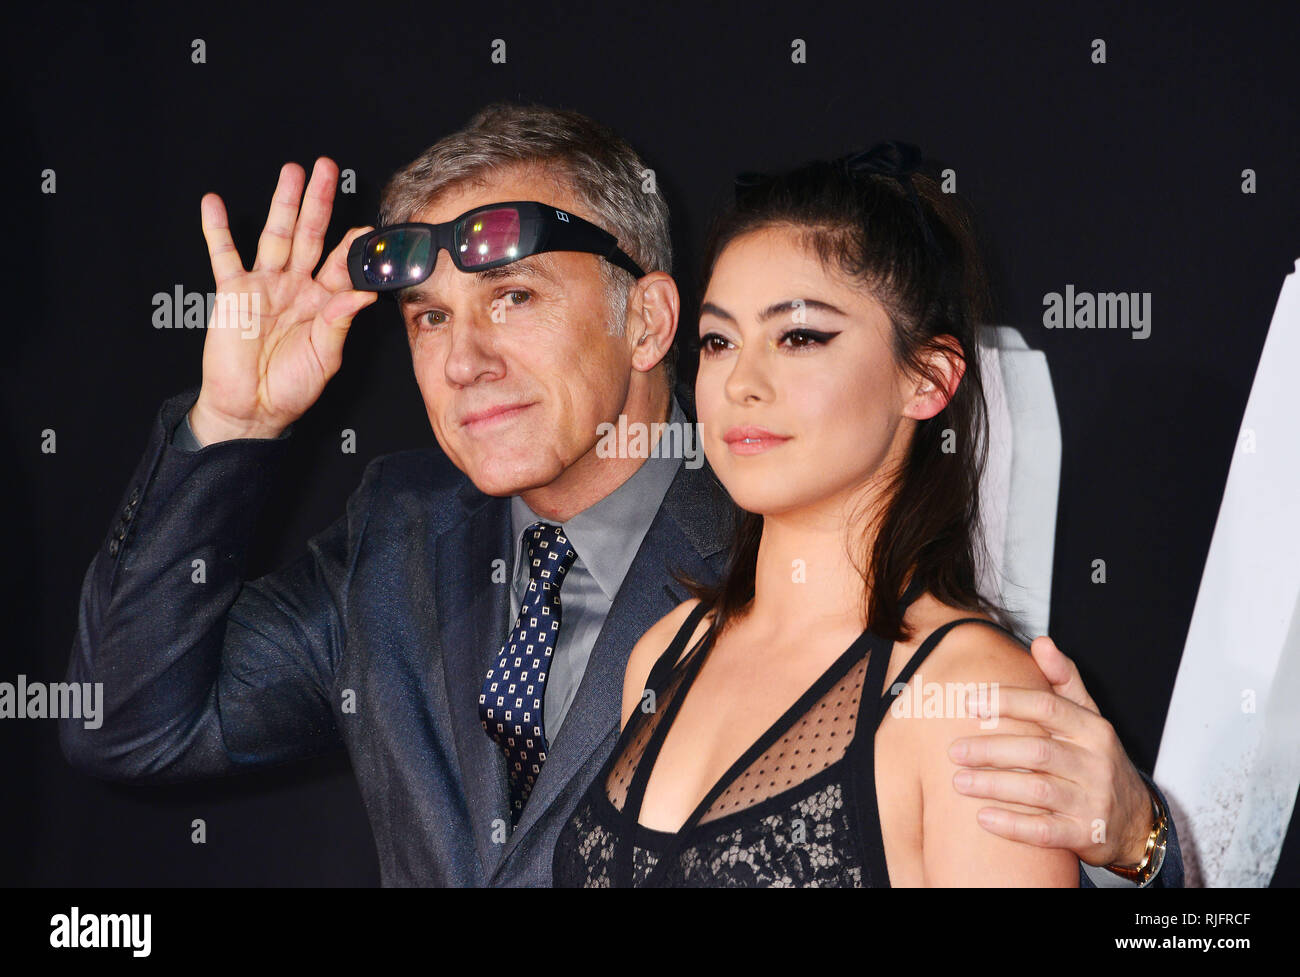 Los Angeles, USA. 05th Feb, 2019. a_ Christoph Waltz, Rosa Salazar 001 arrives at the Premiere Of 20th Century Fox's Alita Battle Angel at Westwood Regency Theater on February 05, 2019 in Los Angeles, California. Credit: Tsuni/USA/Alamy Live News - Stock Image